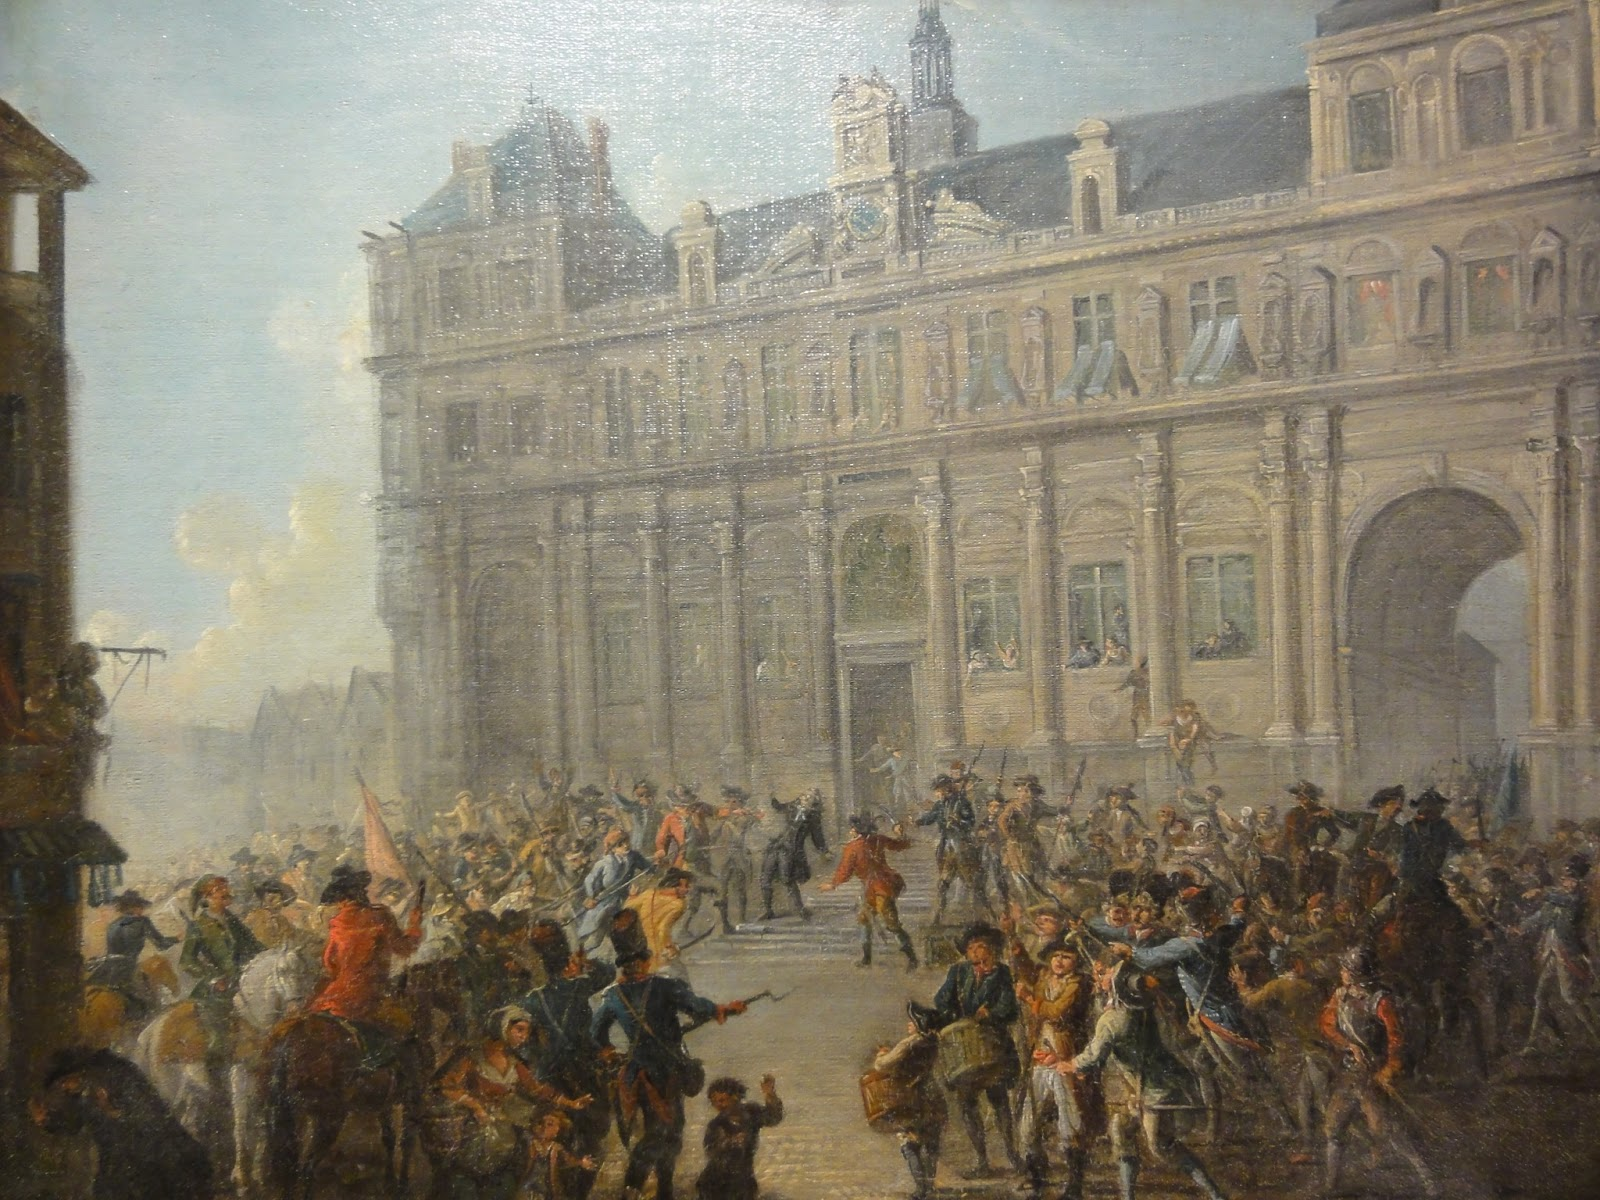 french revolution on europe Start studying ap euro: french revolution and napoleonic europe learn vocabulary, terms, and more with flashcards, games, and other study tools.